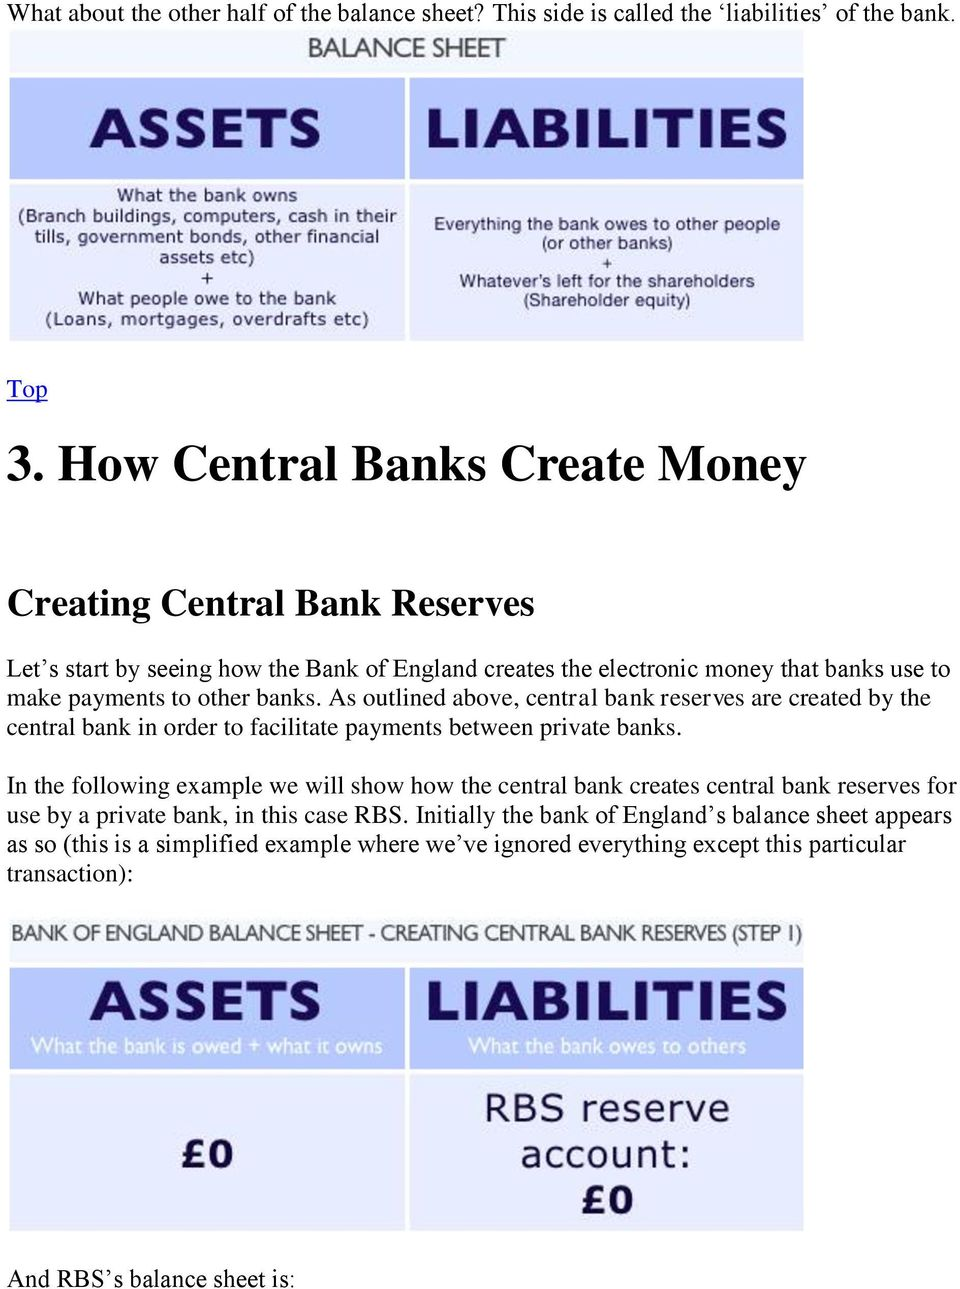 As outlined above, central bank reserves are created by the central bank in order to facilitate payments between private banks.